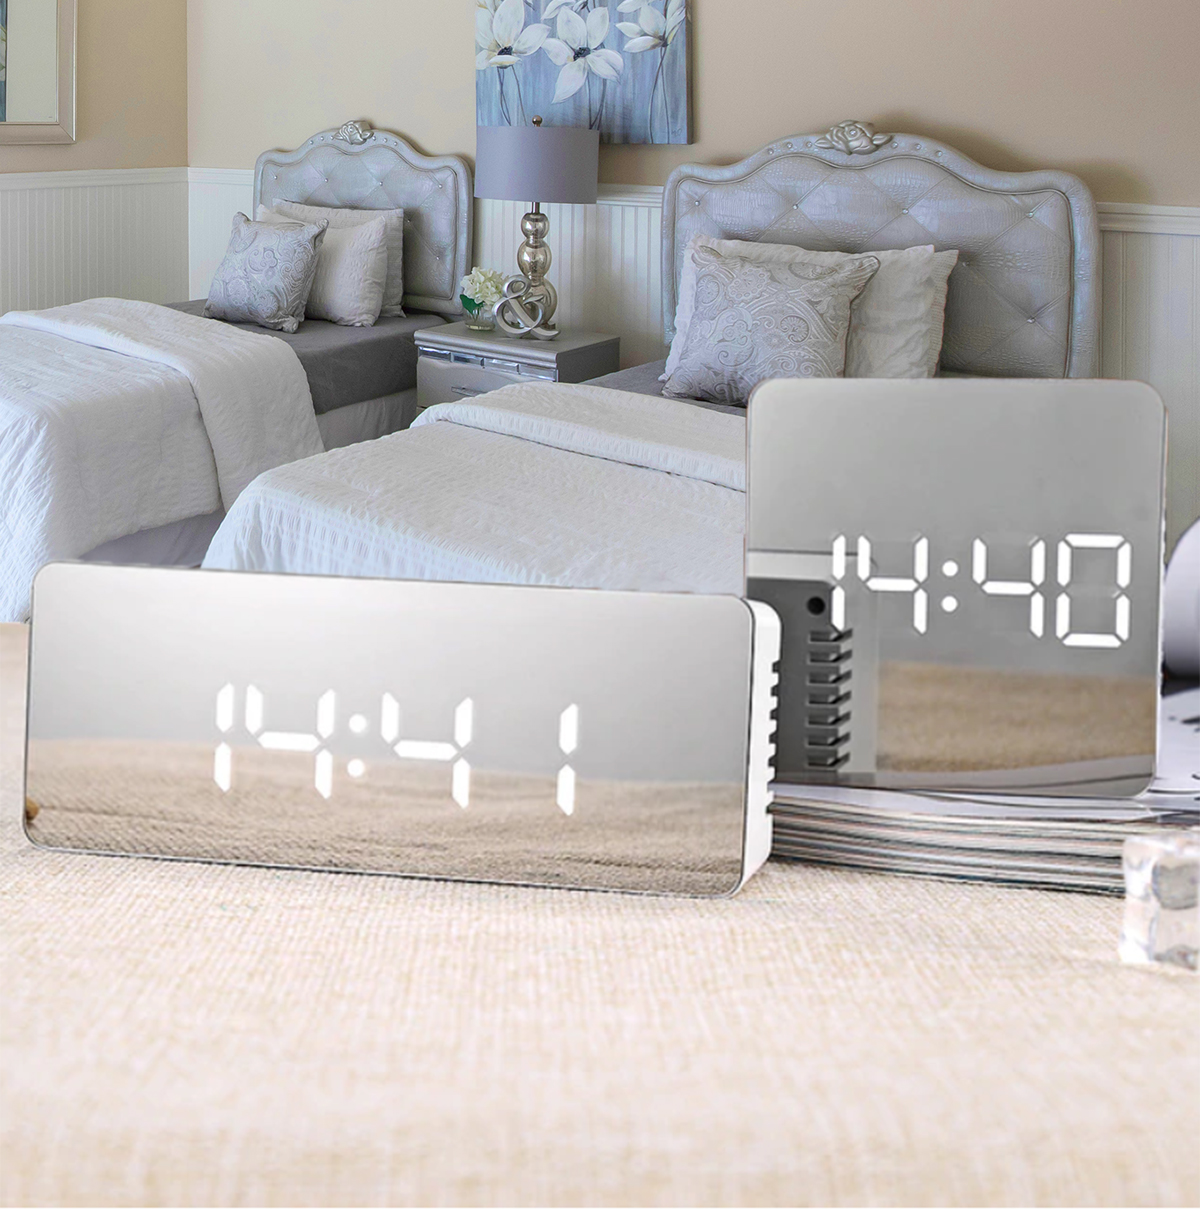 Sleek Portable Alarm Clock, Makeup Mirror and Thermometer